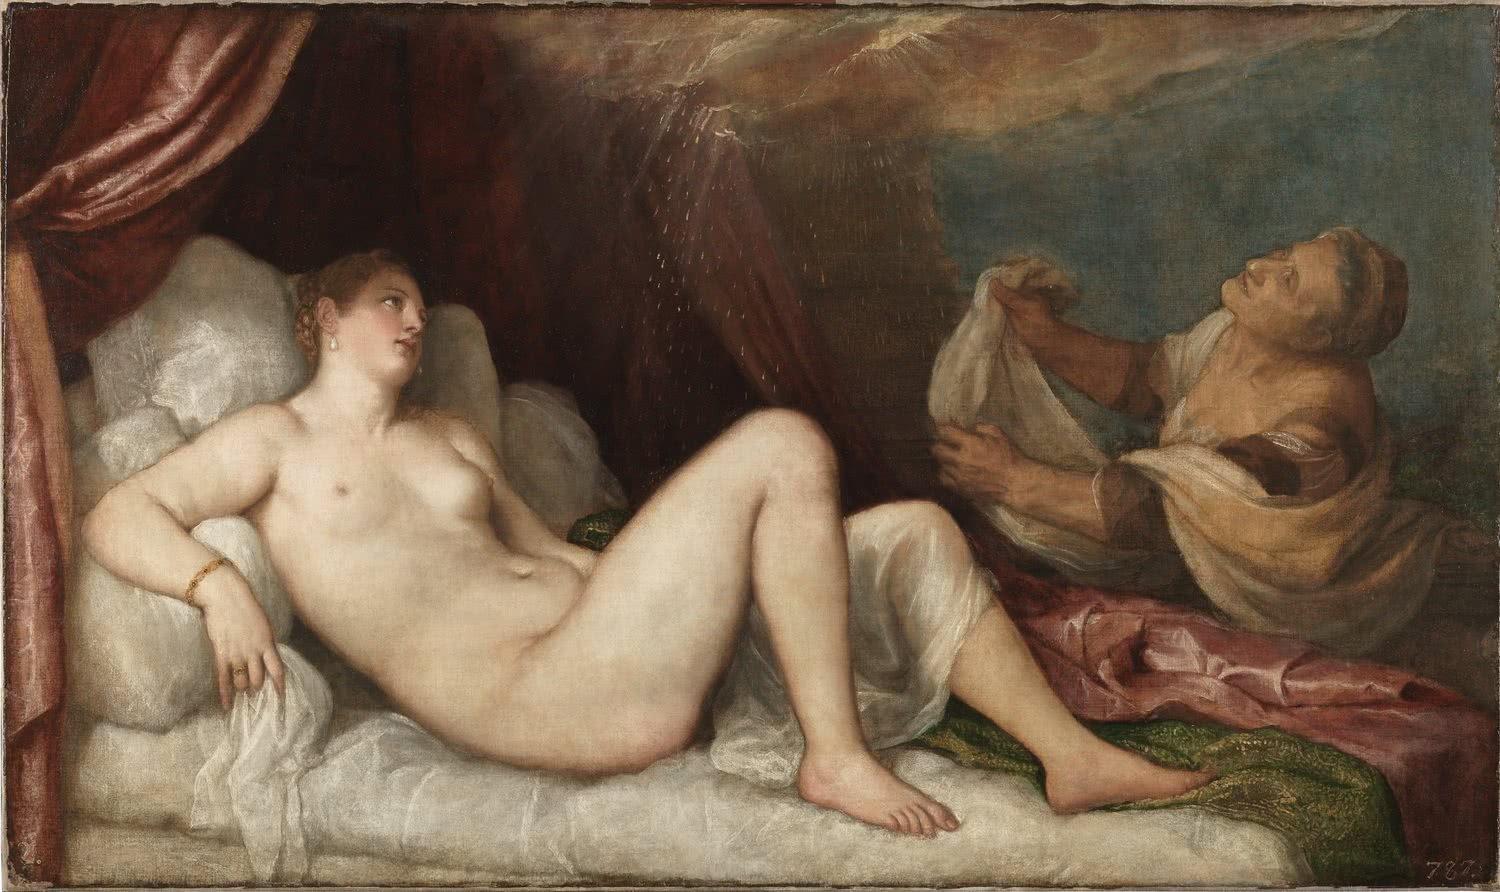 http://www.hoyesarte.com/wp-content/uploads/2014/10/Tiziano.-D%C3%A1nae.-The-Wellington-Collection-Apsley-House.jpg